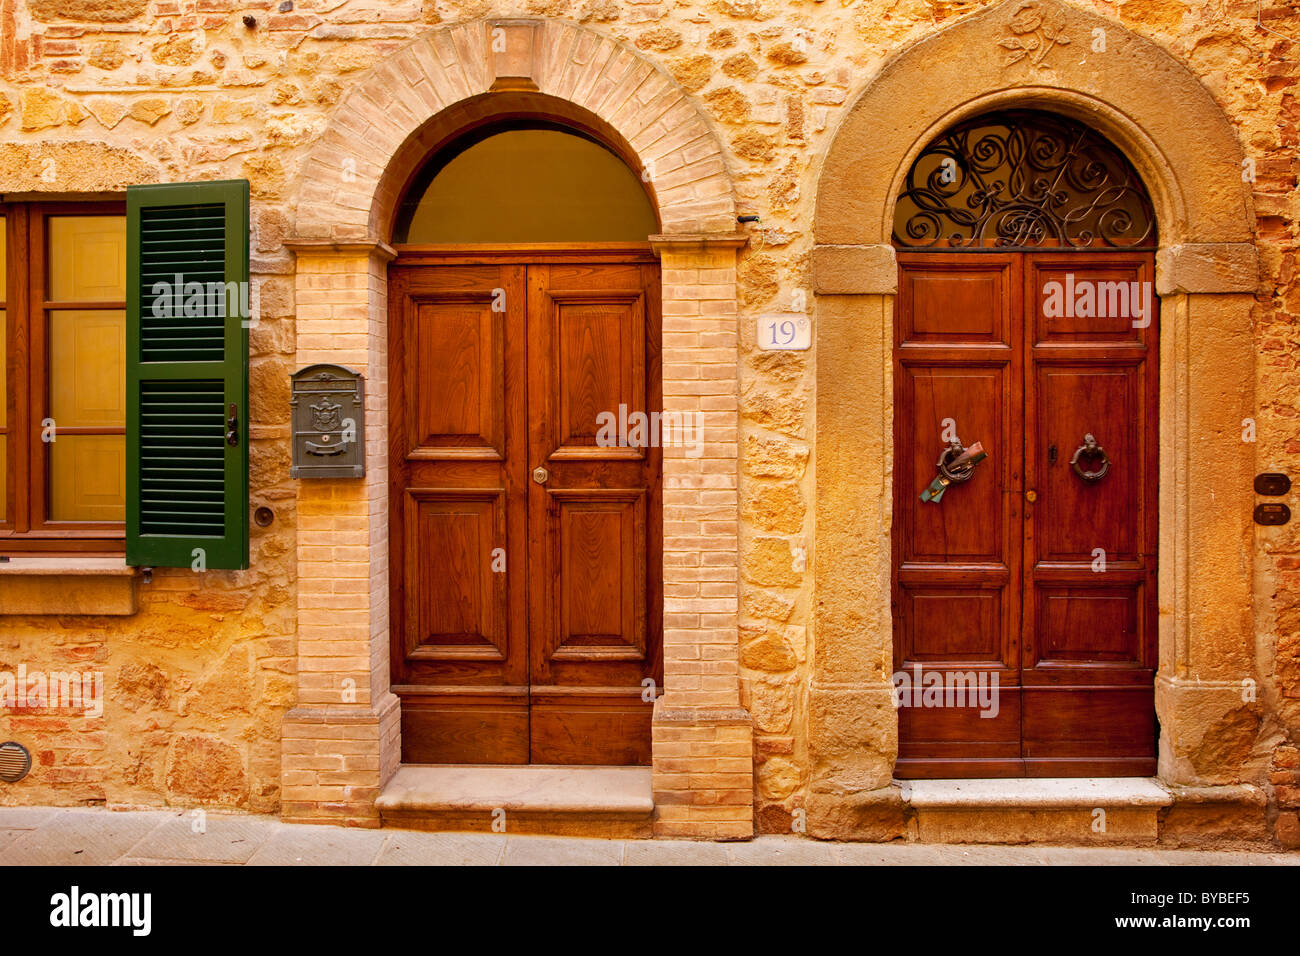 Wooden front doors to homes in medieval village of Castelmuzio near Montisi, Tuscany Italy - Stock Image